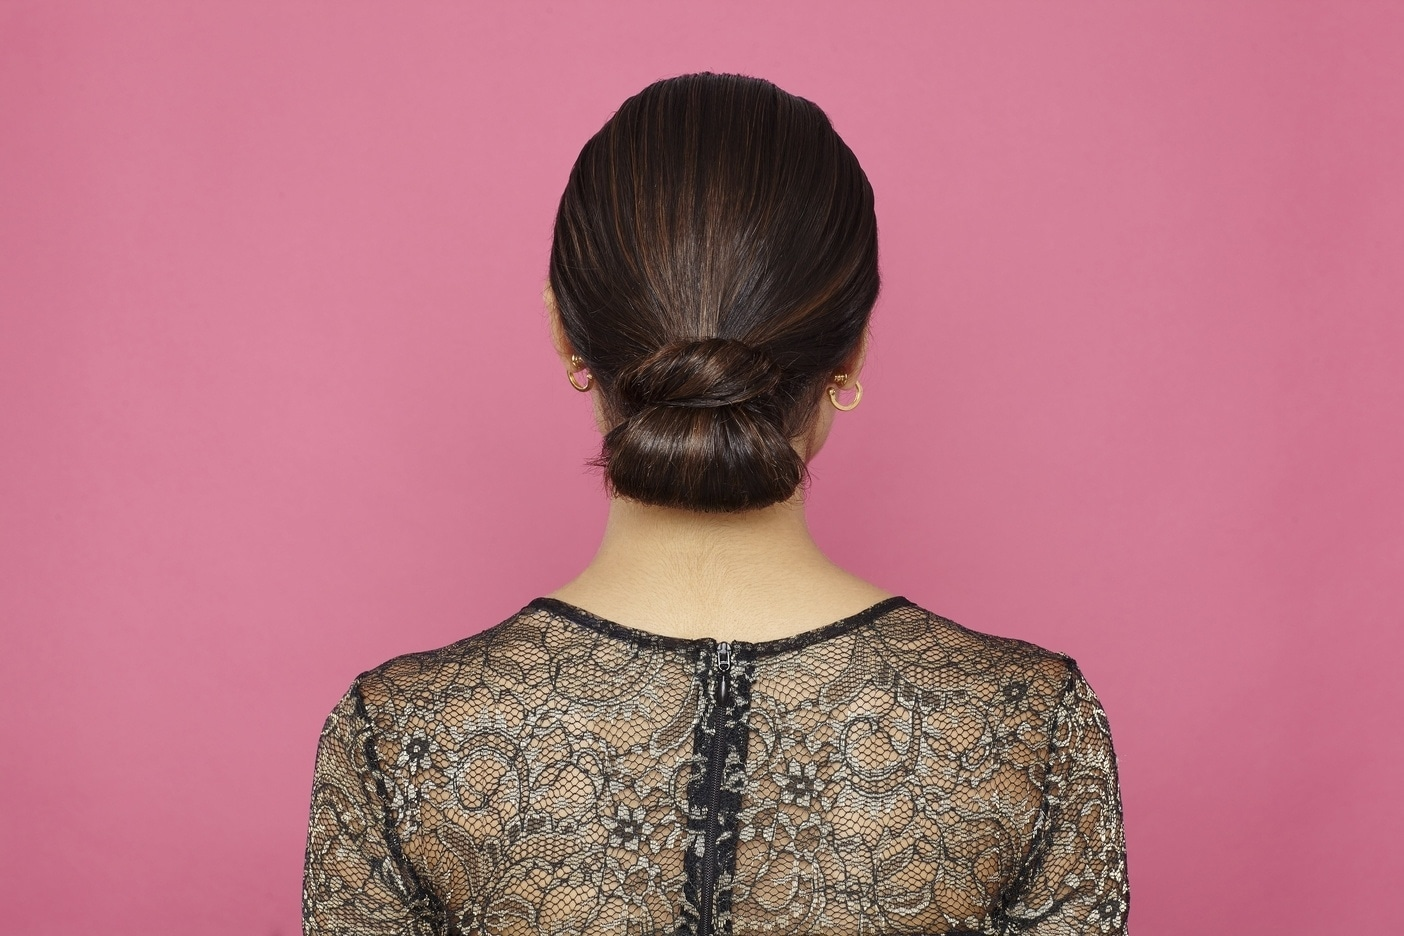 Prom hairstyles for medium hair: 11 ultra chic styles to try now